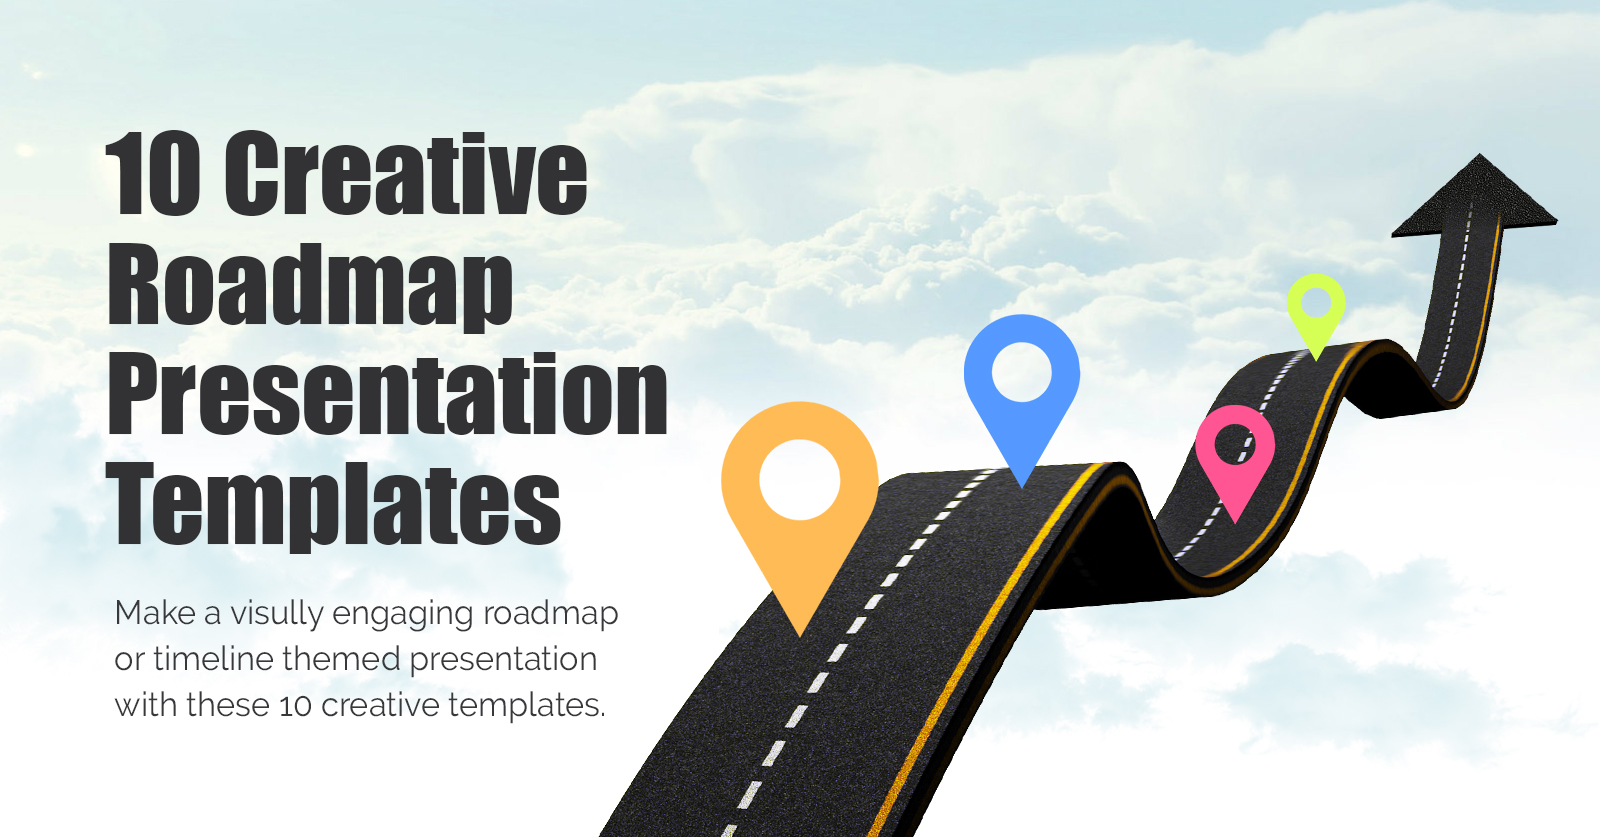 roadmap-prezi-presentation-templates